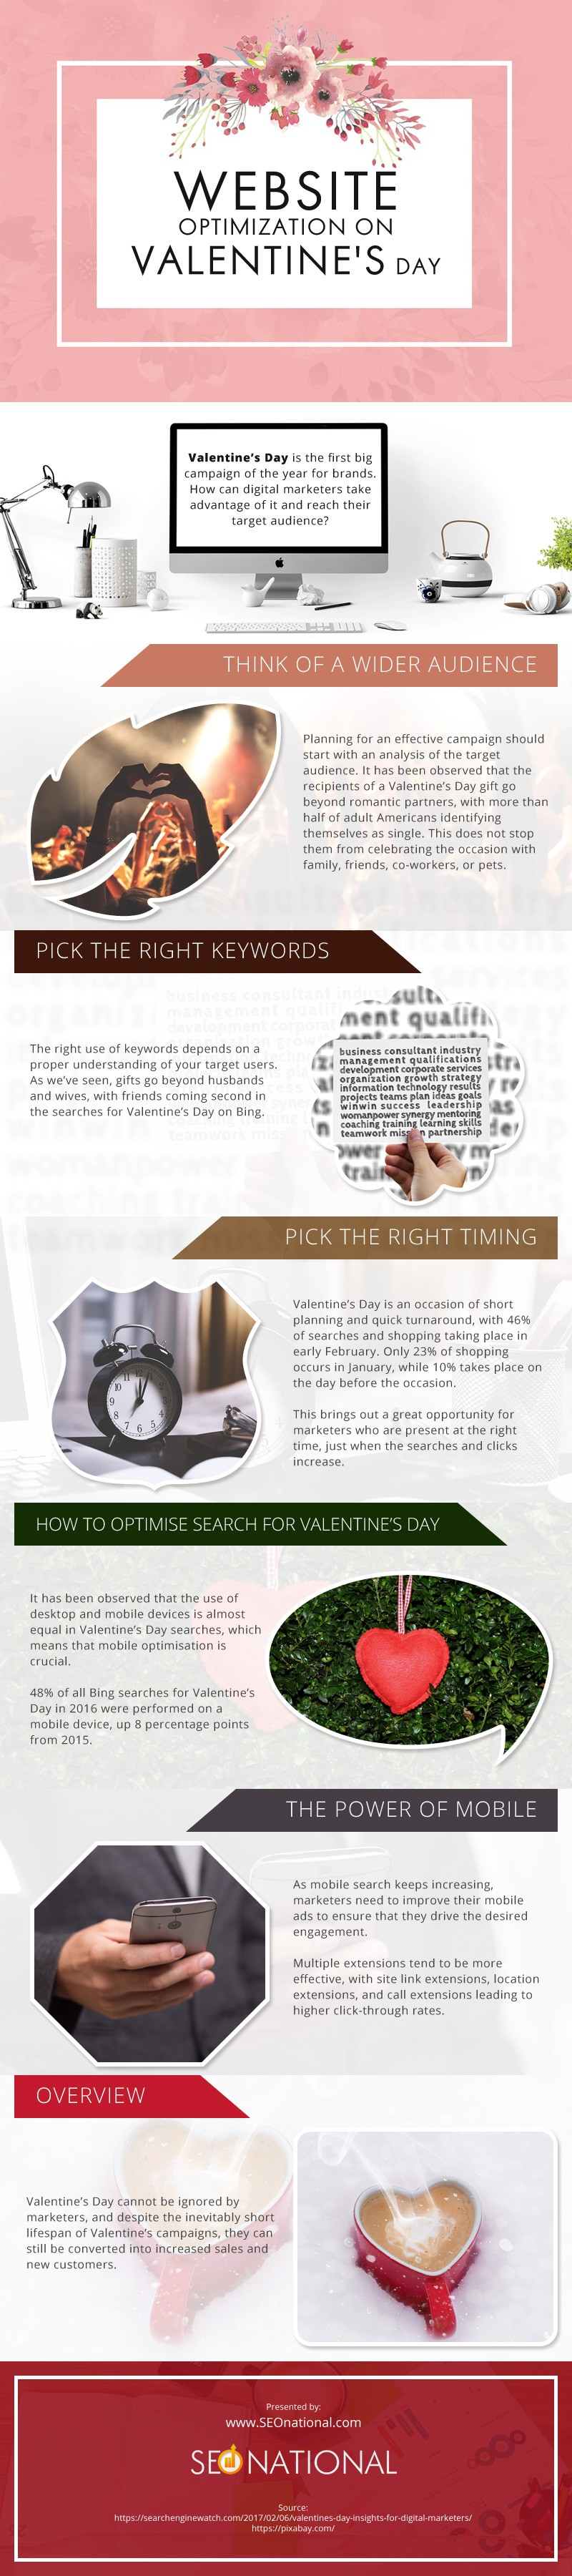 Website Optimization on Valentine's Day [infographic]